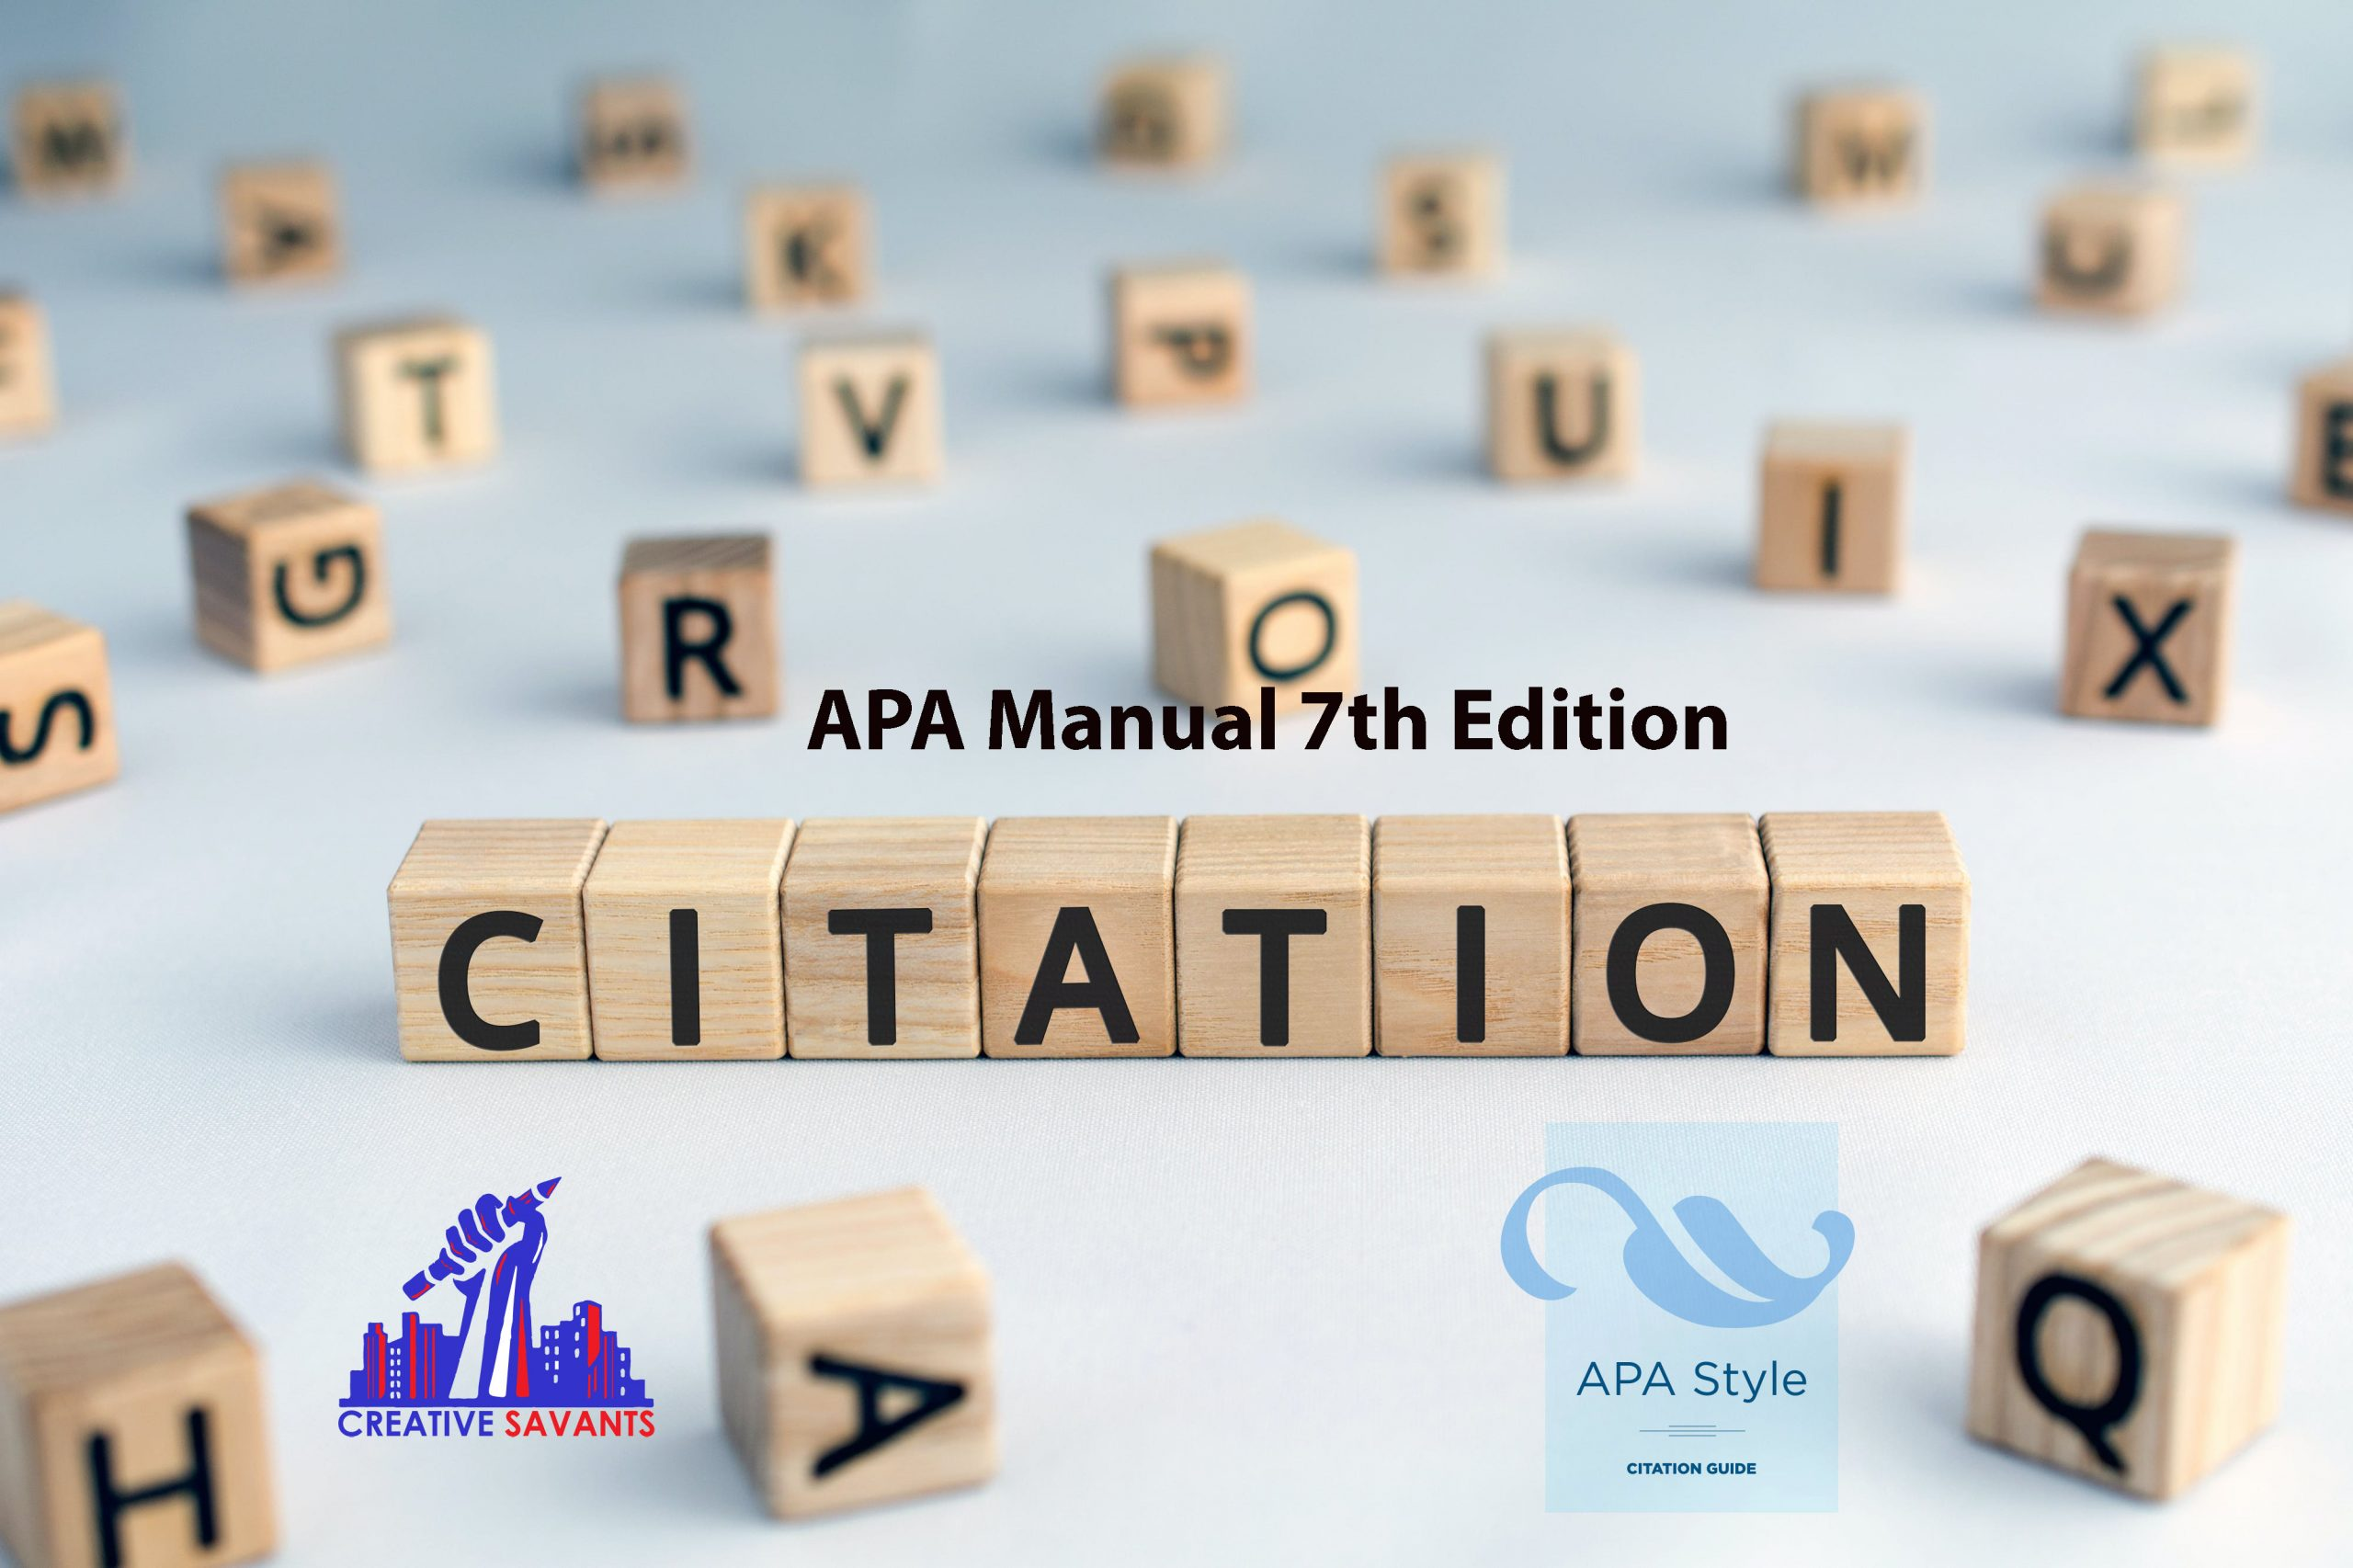 Prominent Changes in the APA Manual 7th Edition